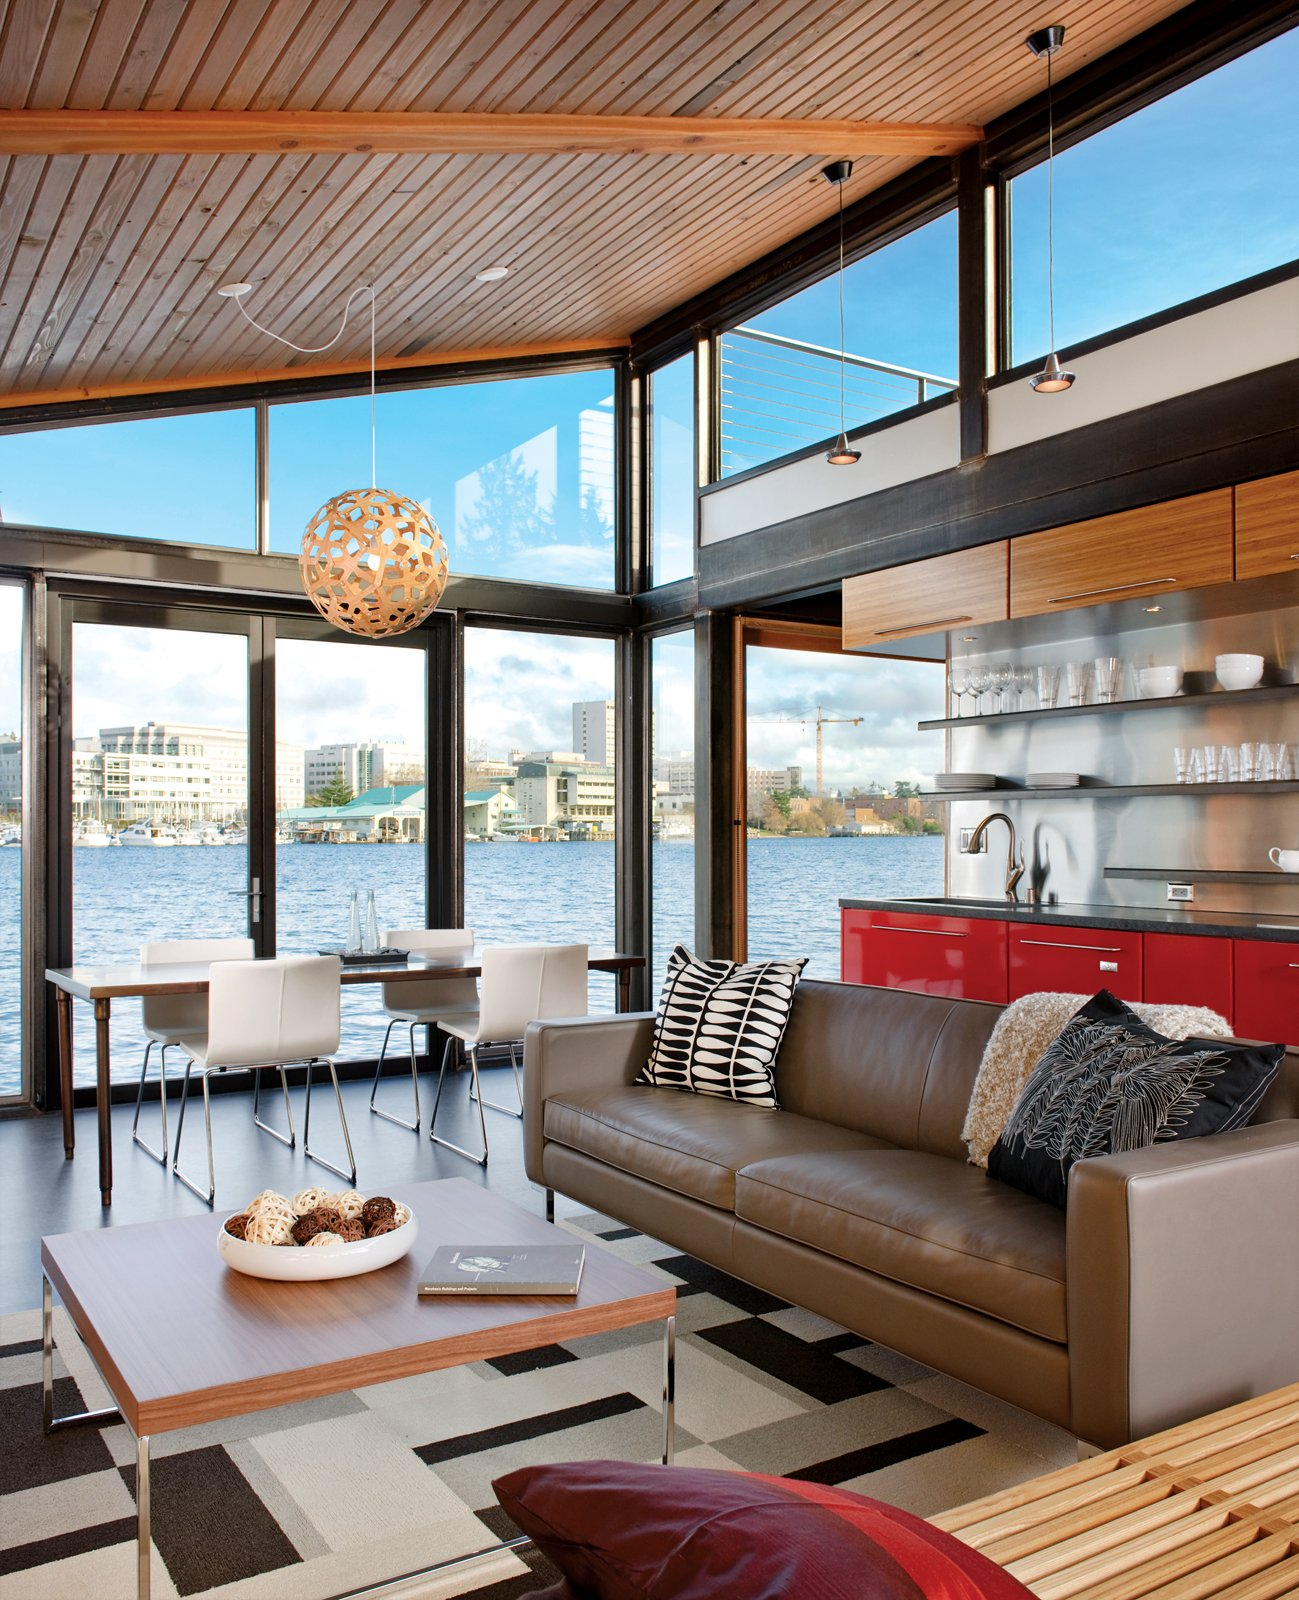 The floor-to-ceiling windows at either end of a Seattle boathouse allow light to stream through the entire 1,000-square-foot space.  Photo 1 of 2 in A Renovated Boathouse on Seattle's Portage Bay